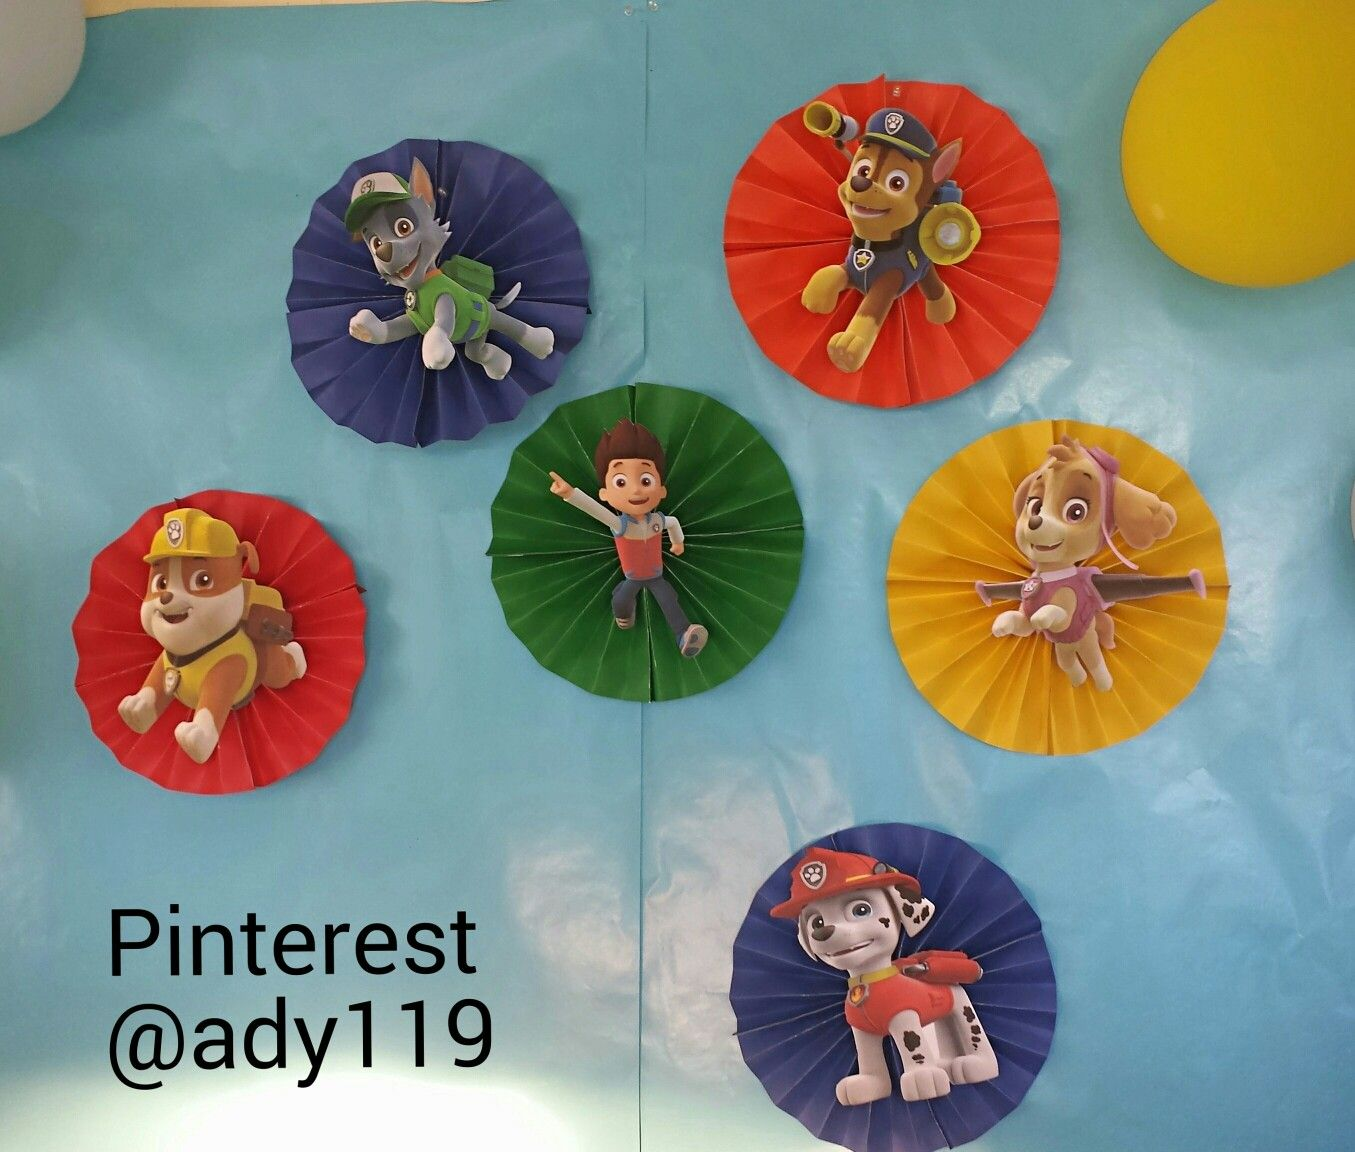 Paw Patrol backdrop. Crafting cover paper fans with character printouts on card stock. 2 images per sheet of paper. Blue background is gift wrapping paper.